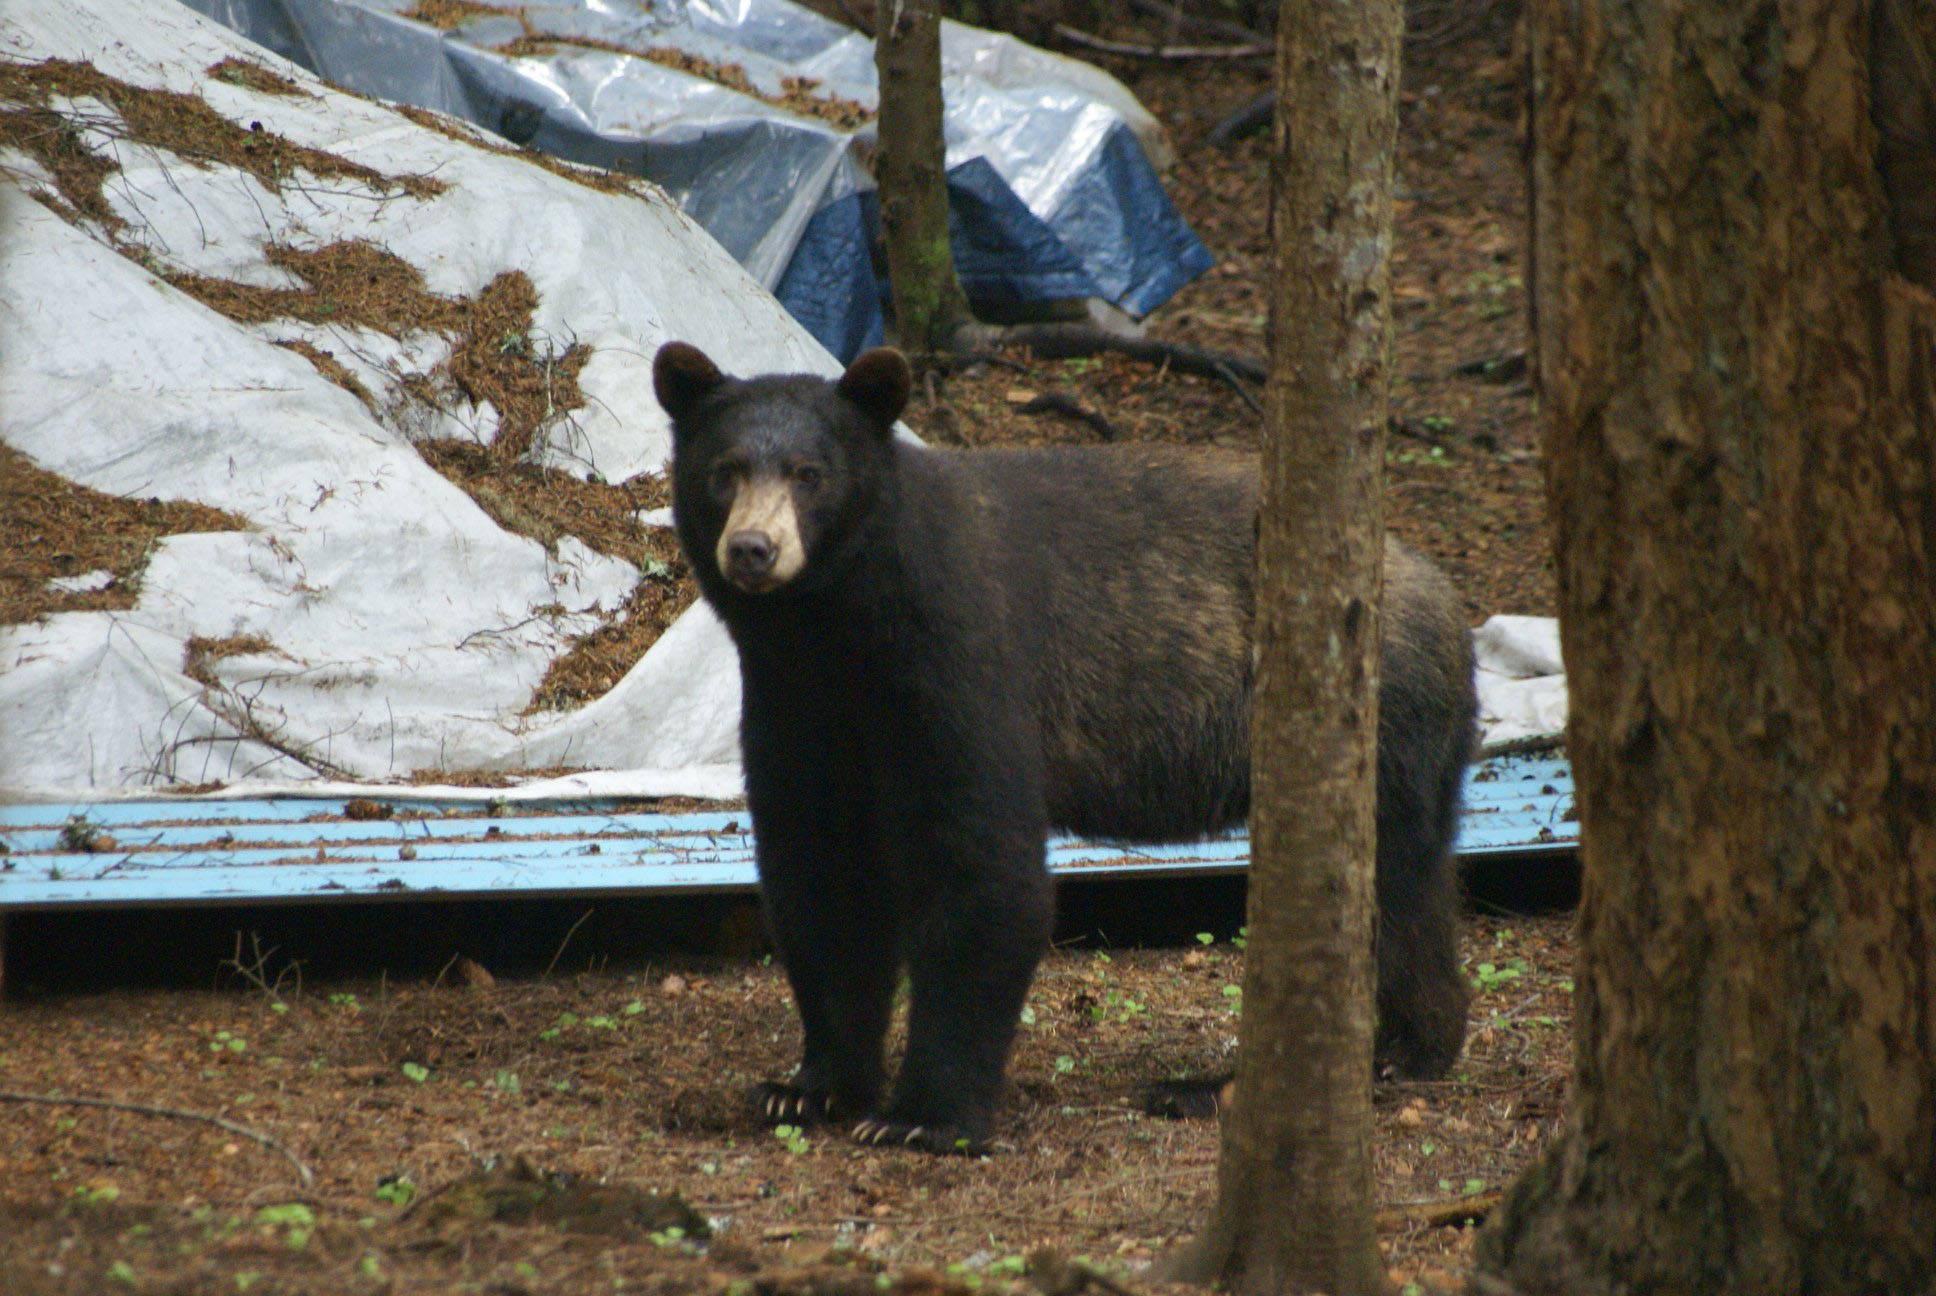 Bears killed after clawing way into Sunshine Valley home